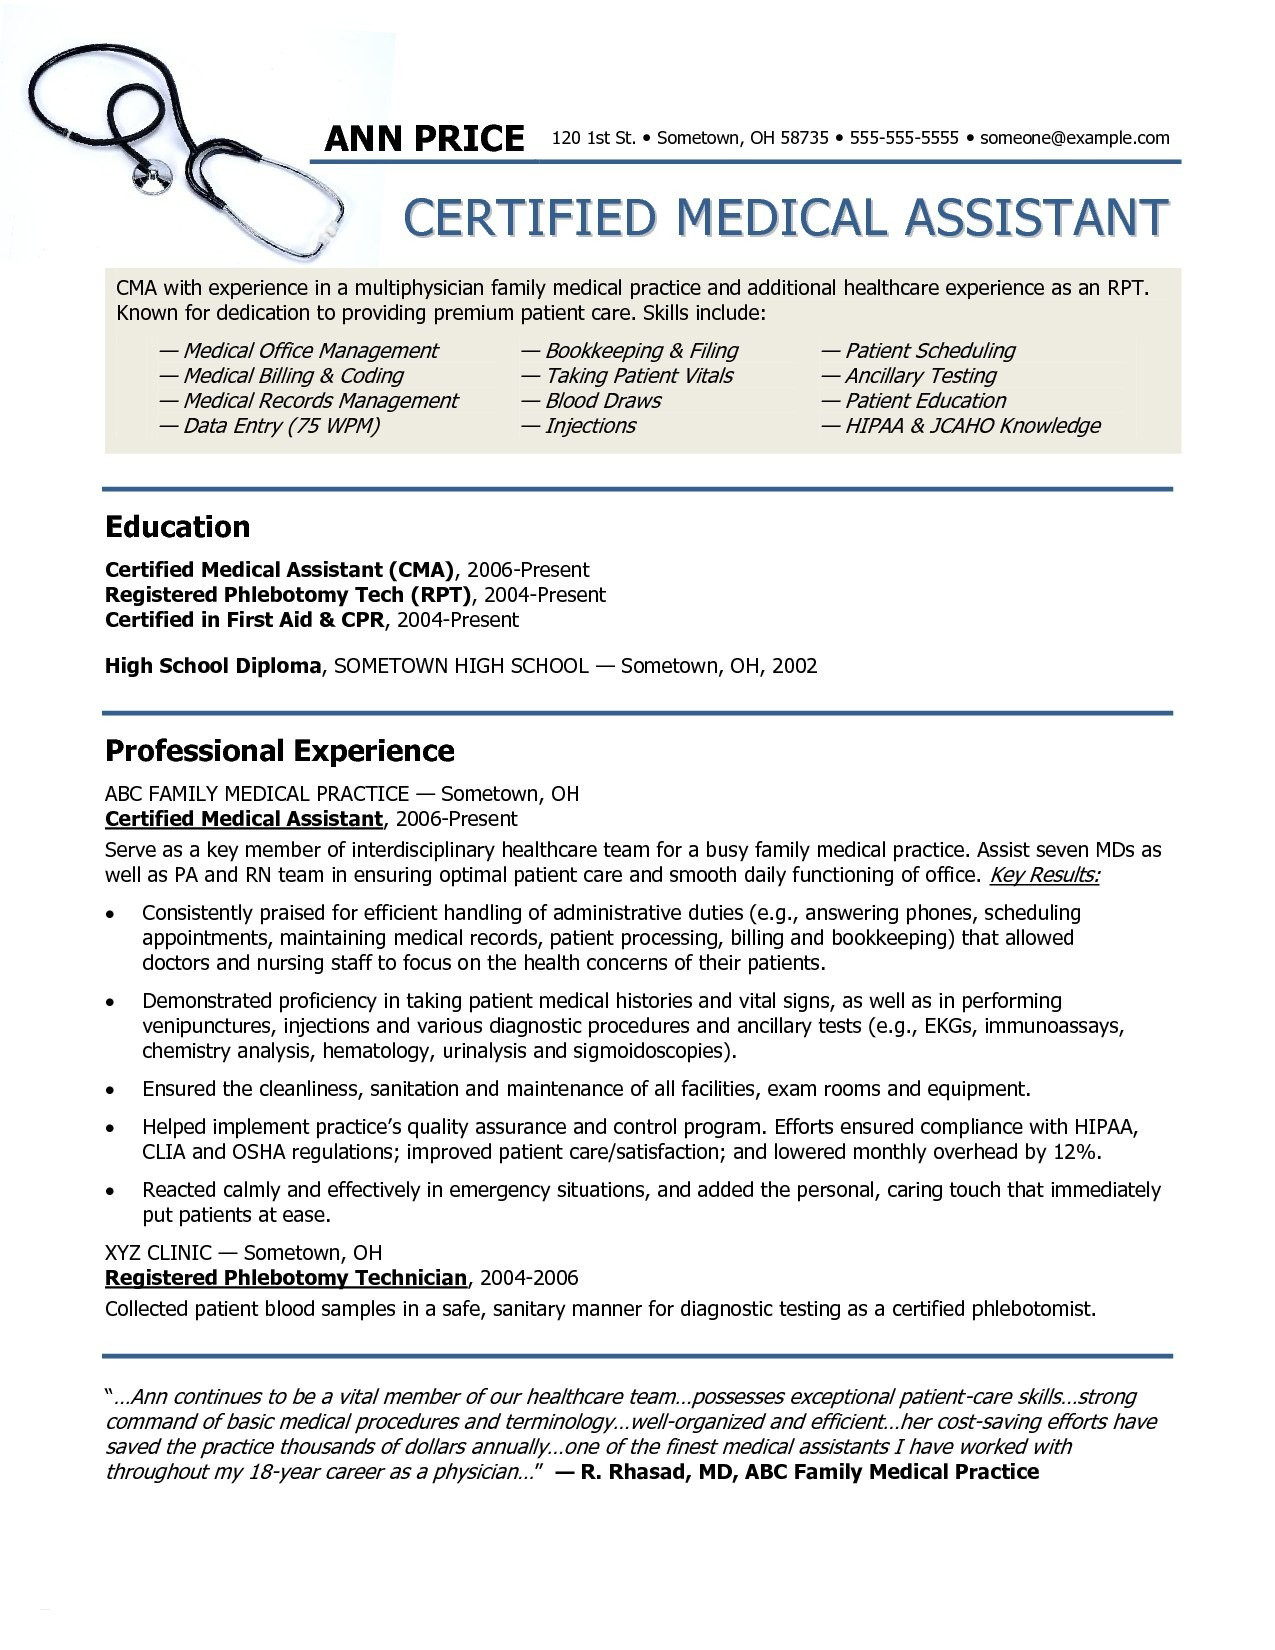 Resume Template Medical assistant - Medical assistant Resume Unique Medical assistant Resumes New